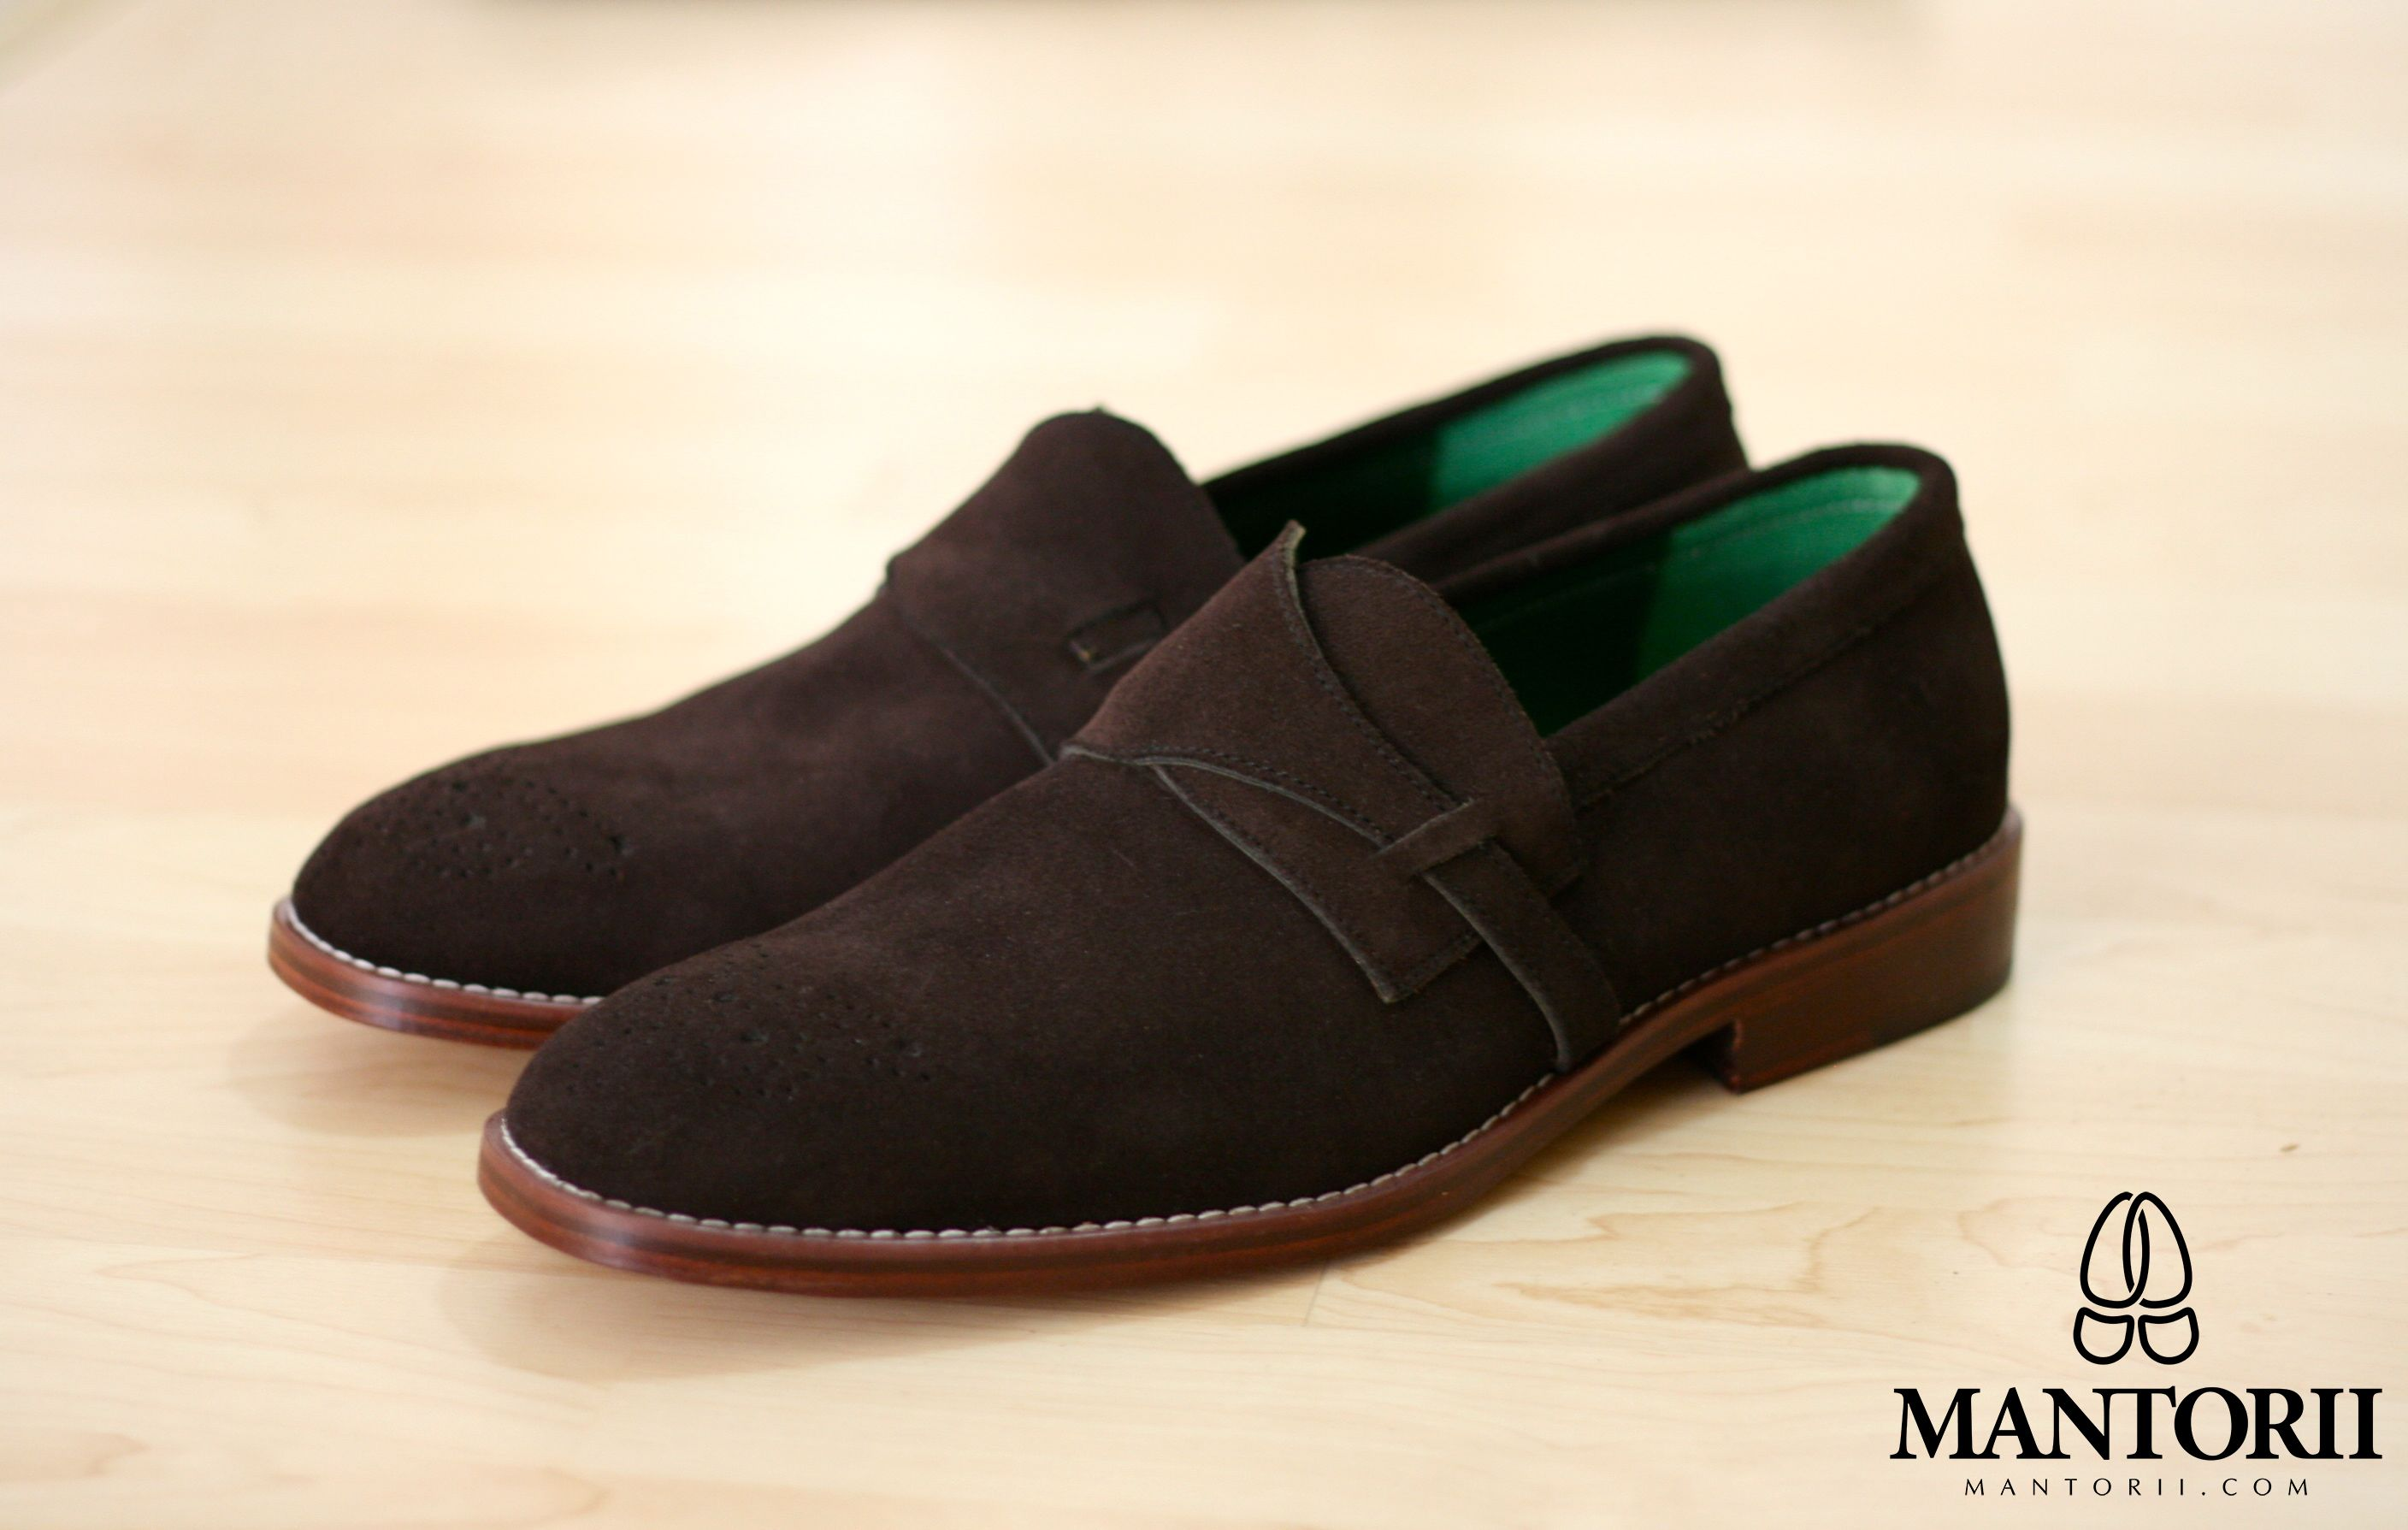 Mantorii Butterfly Loafer, made according to customer's